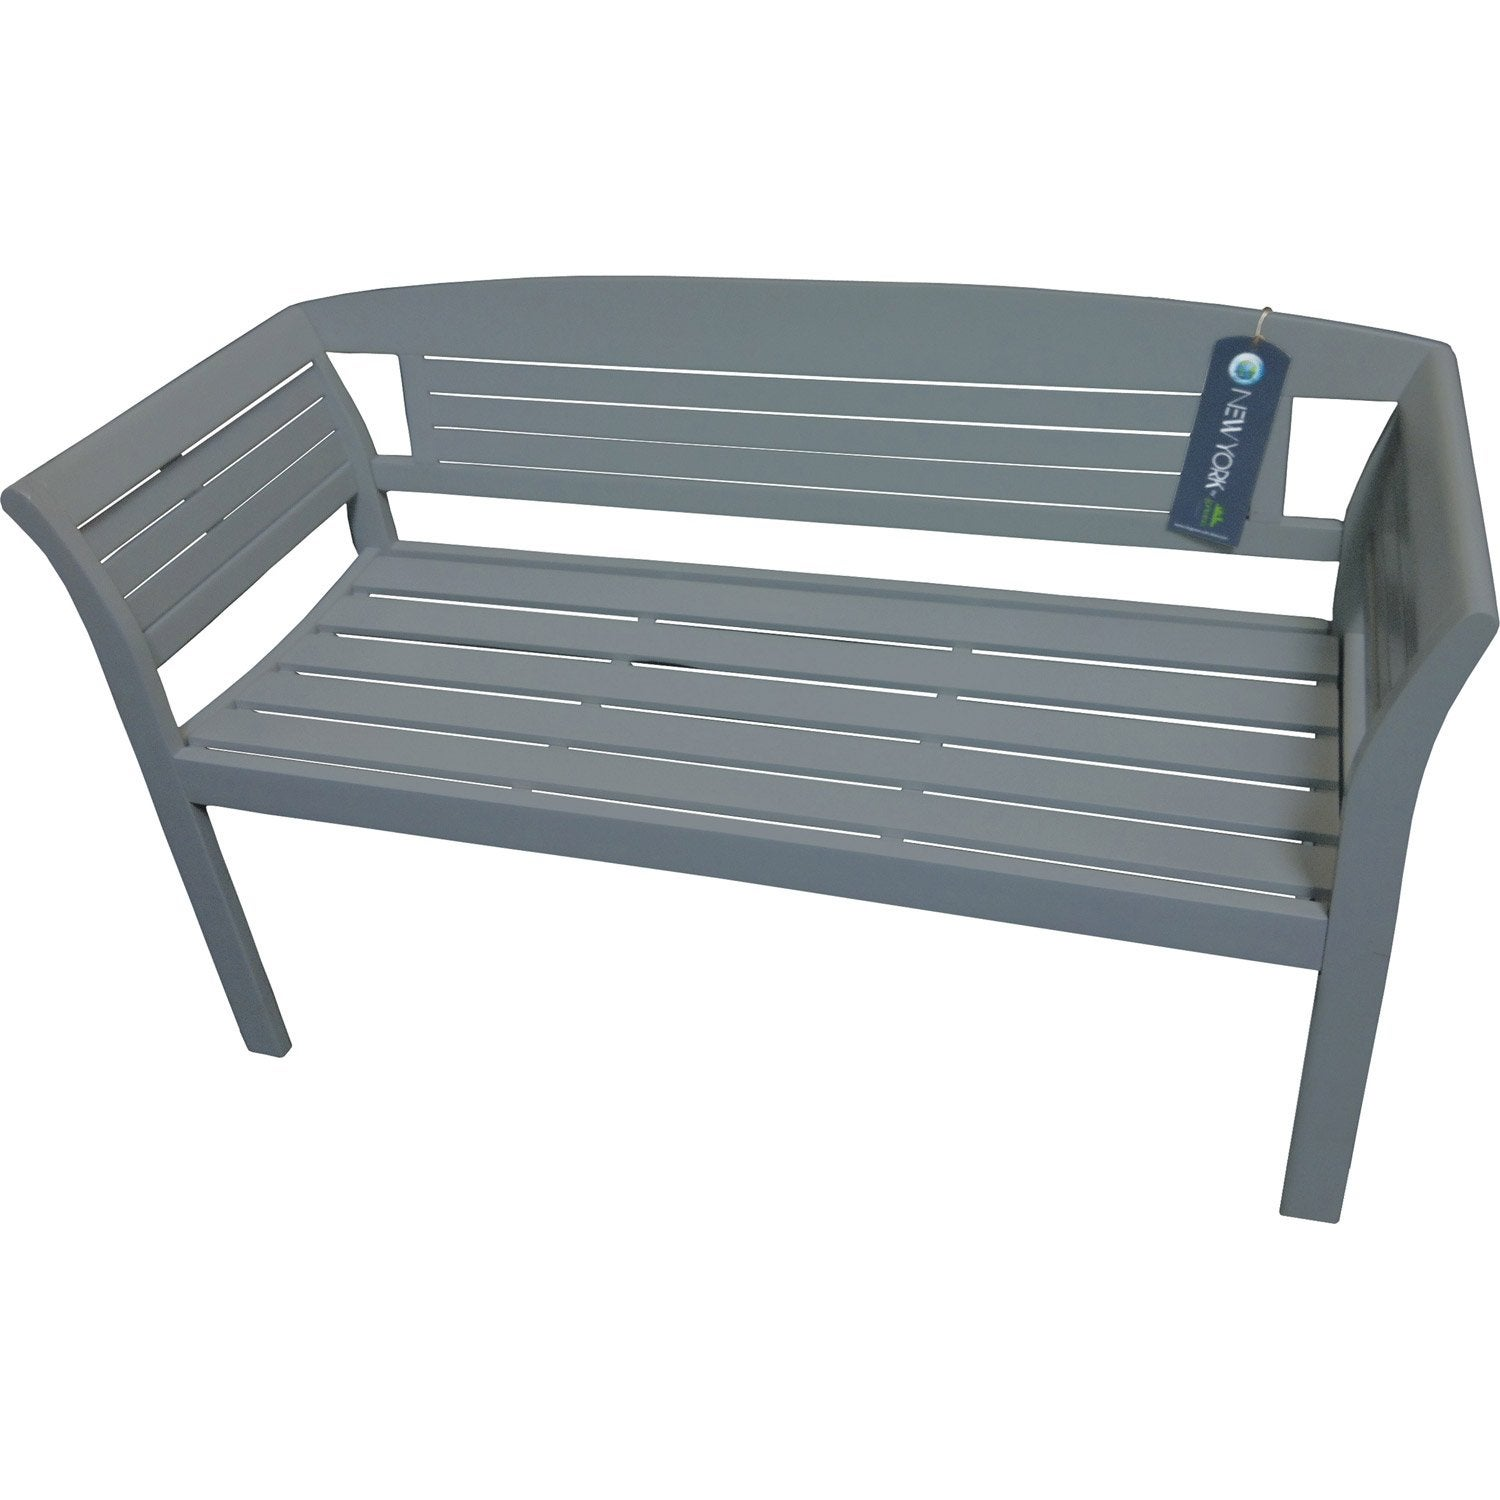 Banc 2 places de jardin en bois New-york gris | Leroy Merlin